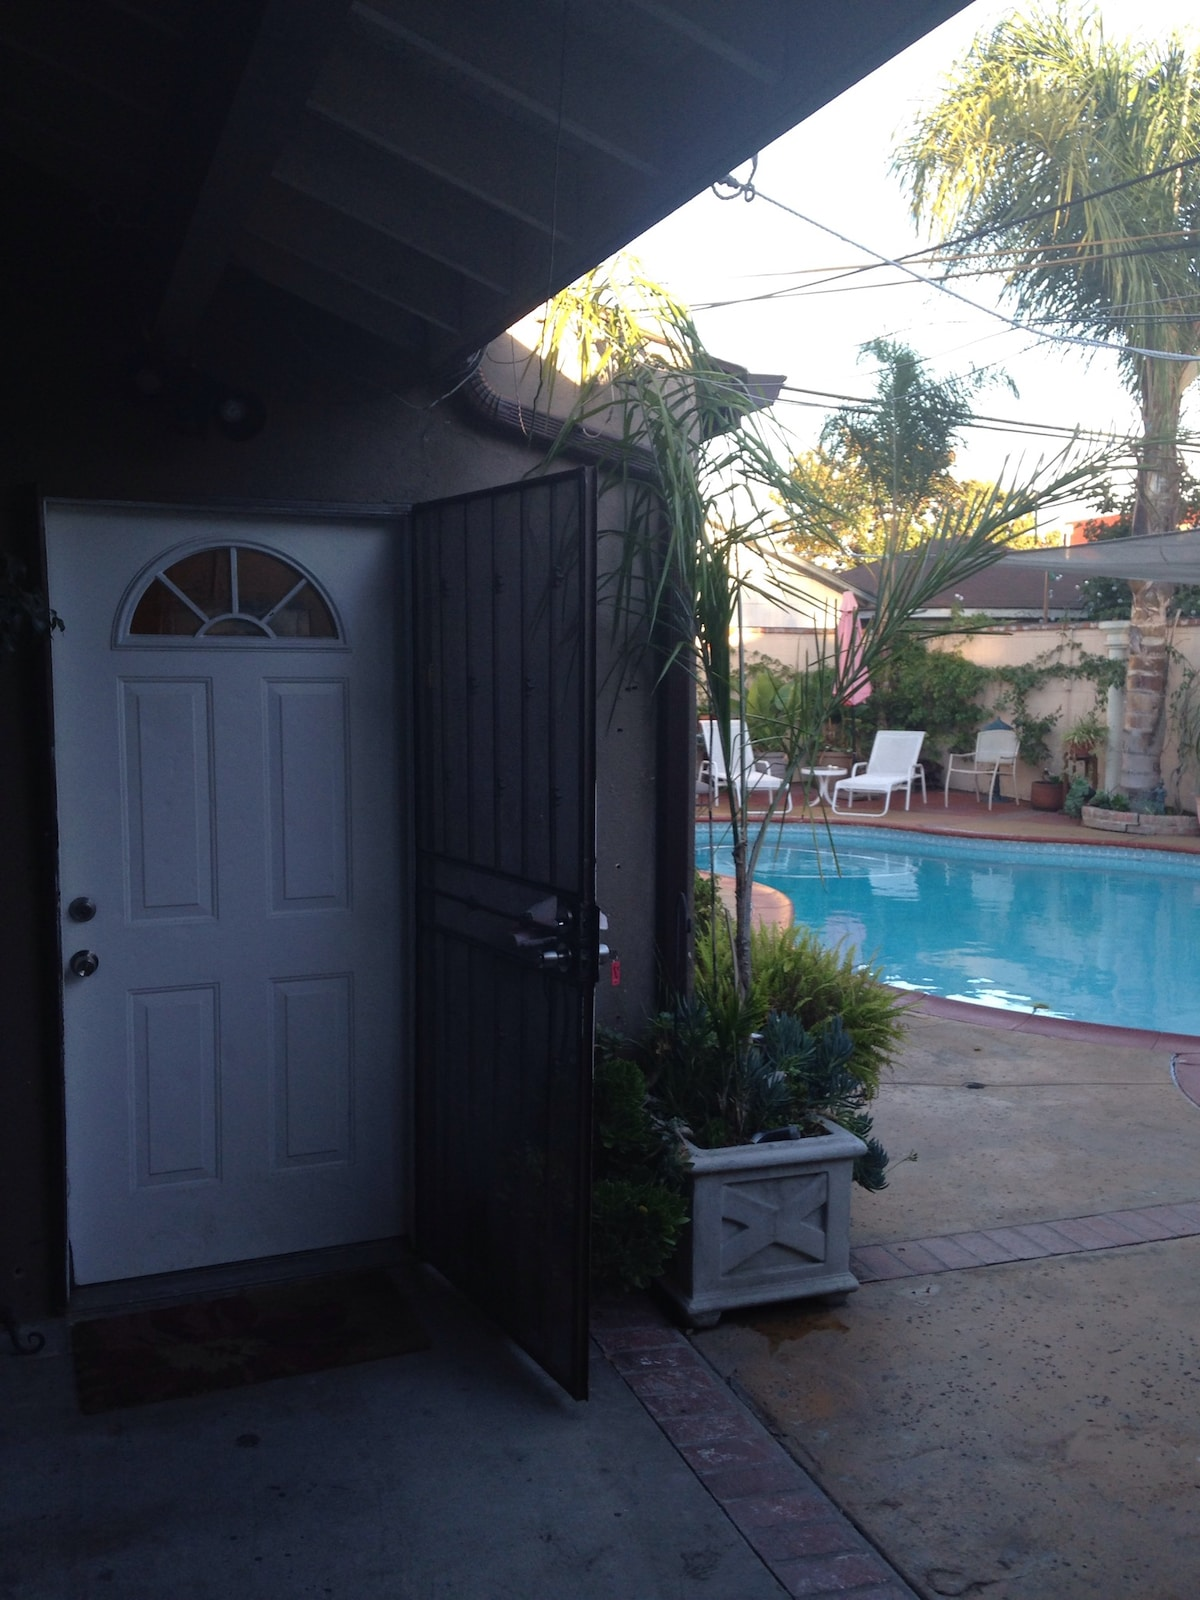 Your front door entrance, with a security screen door for fresh air. And to the right is the pool area.